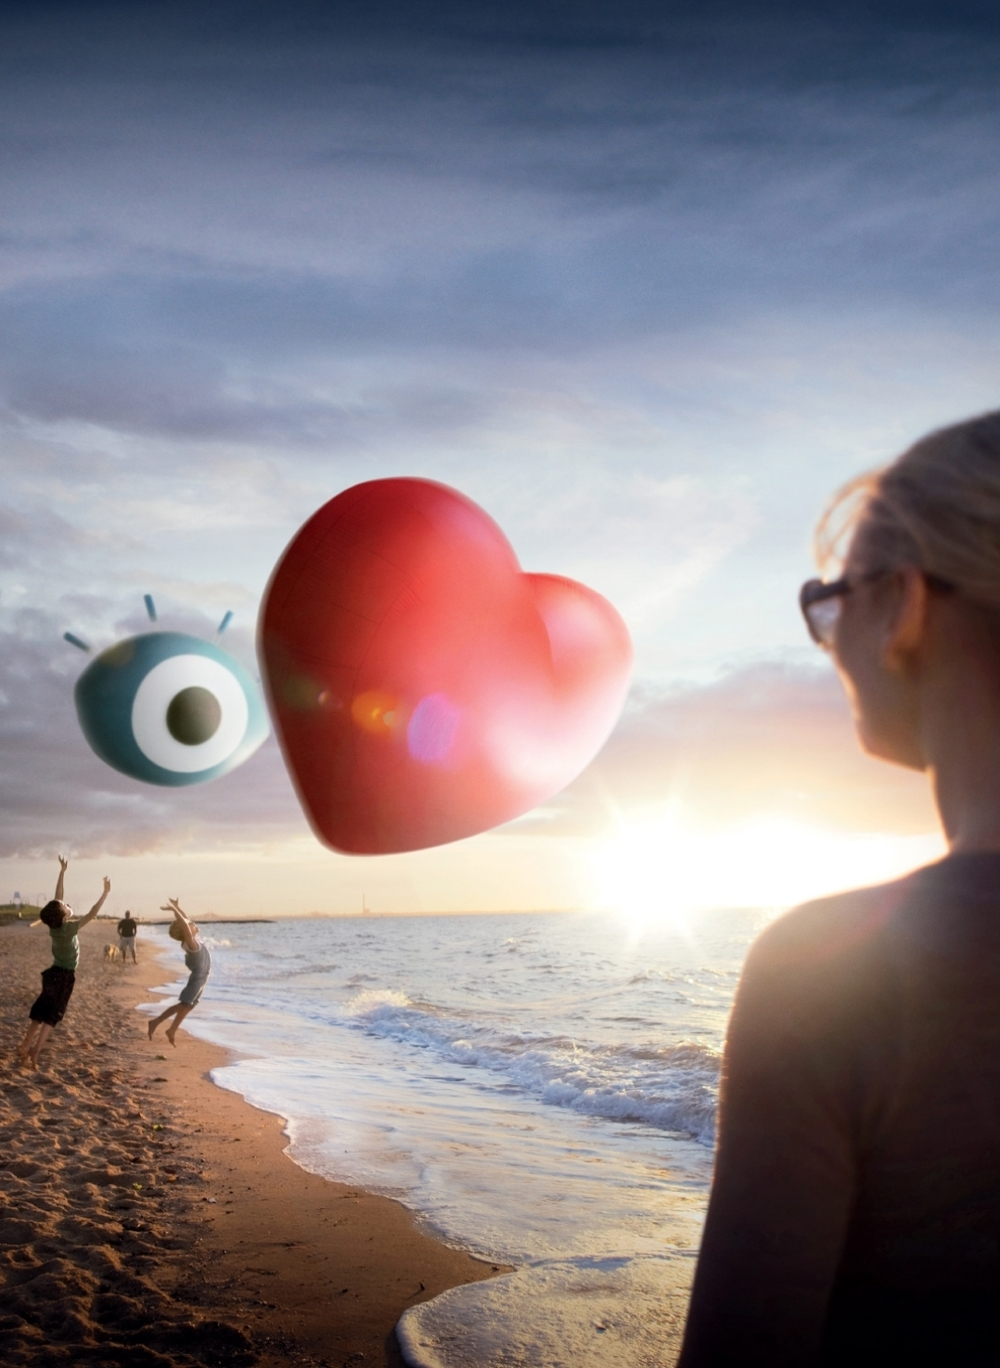 LensCrafters-LC-Eye-Love-Balloons-Beach